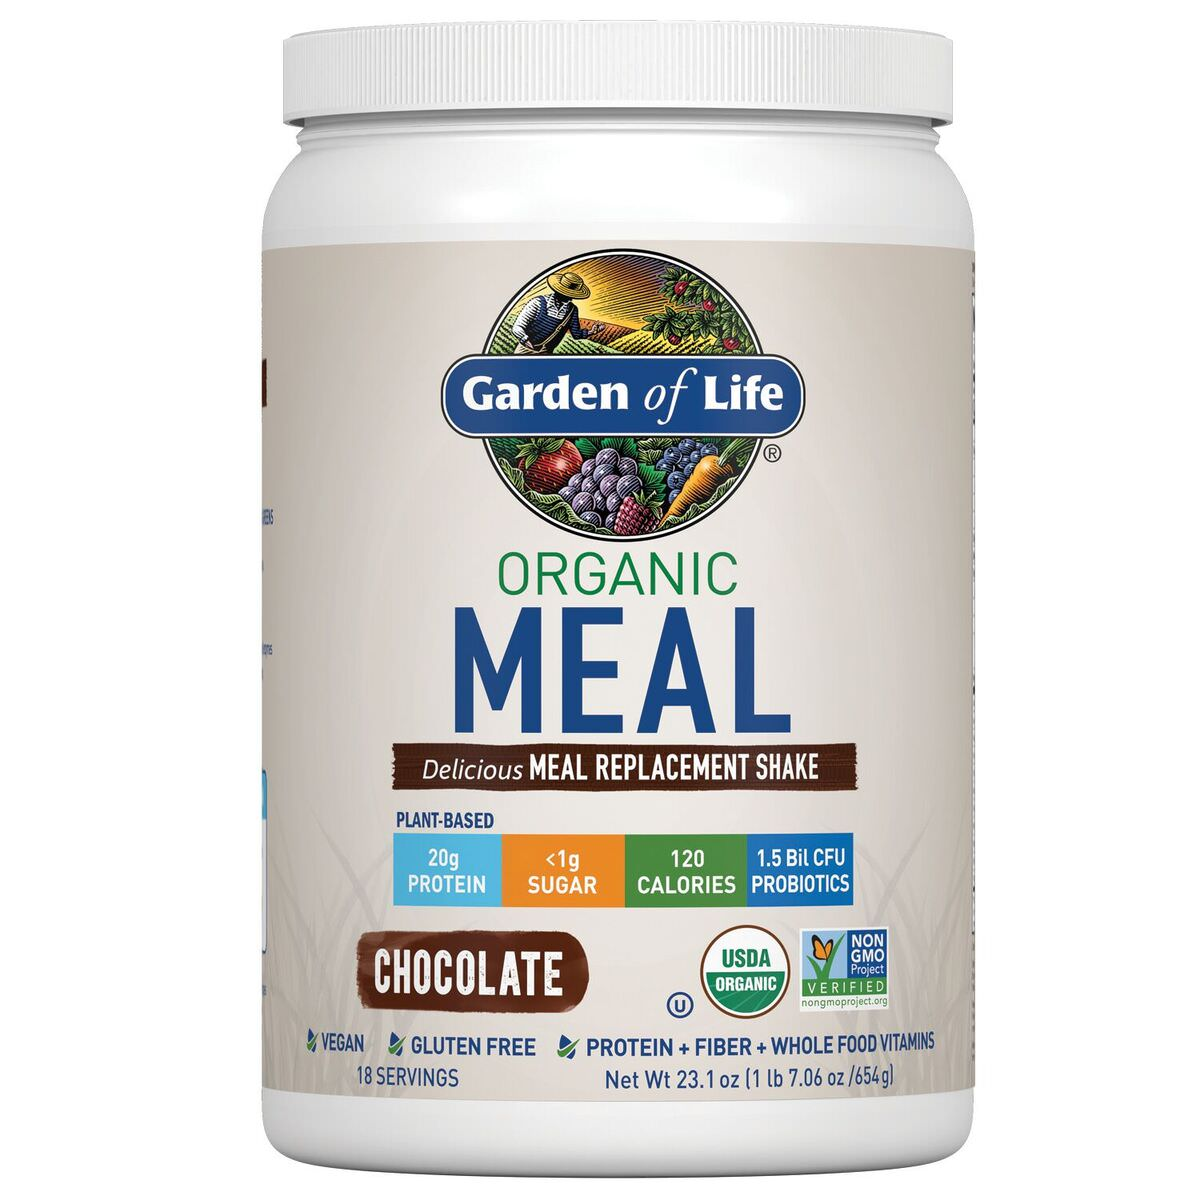 Garden of Life Organic Meal Replacement Powder, Chocolate, 1.4 Lb